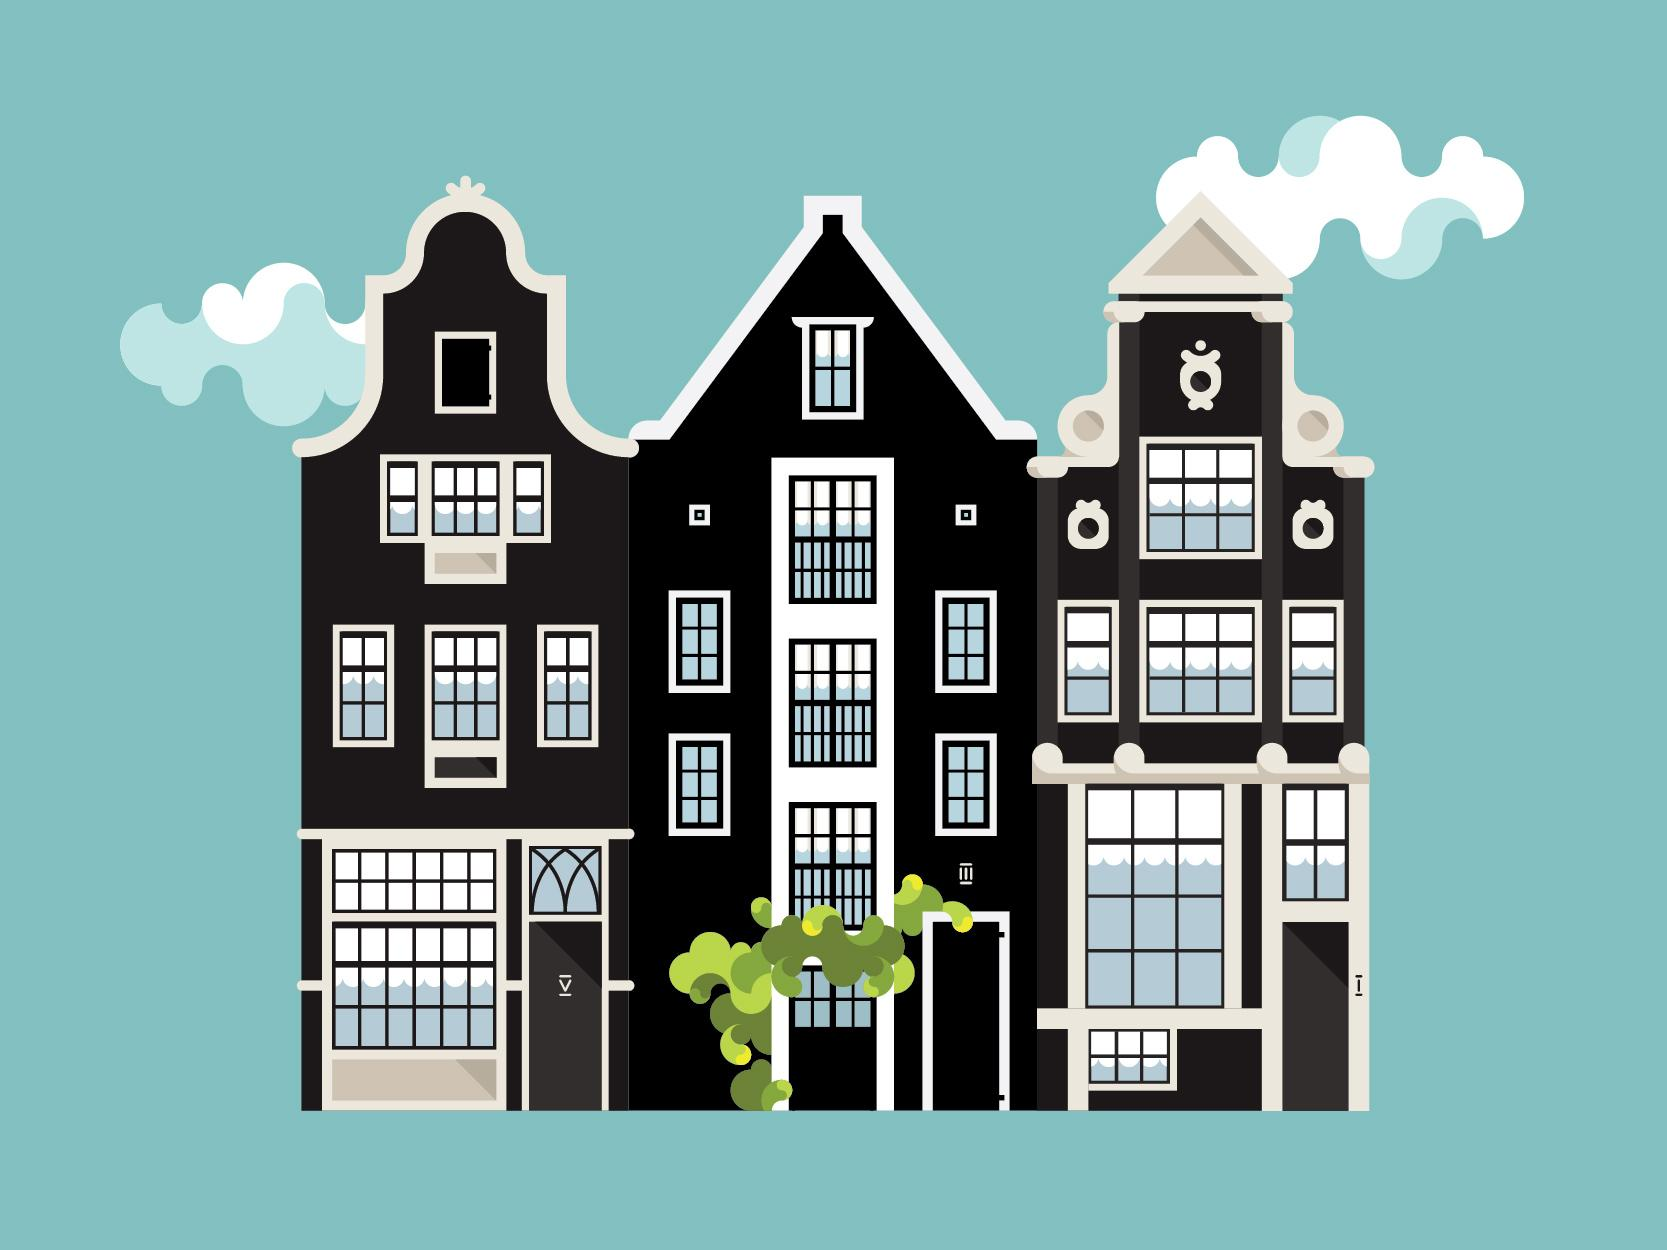 Houses of Amsterdam - image 3 - student project